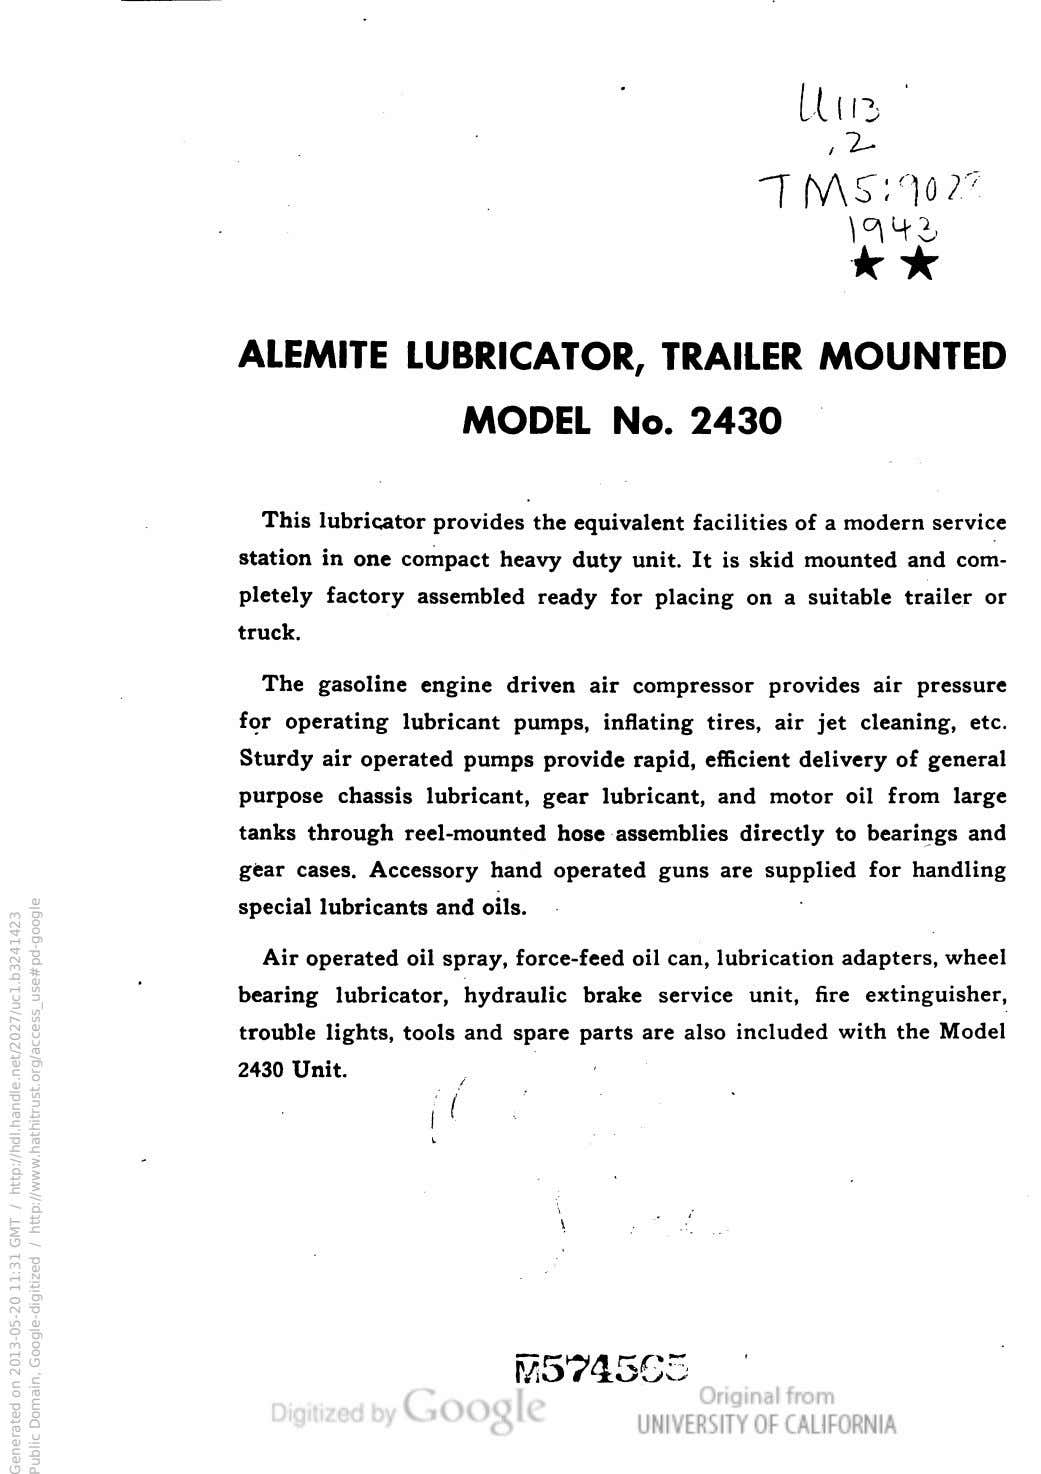 ,1* ALEMITE LUBRICATOR, TRAILER MOUNTED MODEL No. 2430 This lubricator provides the equivalent facilities of